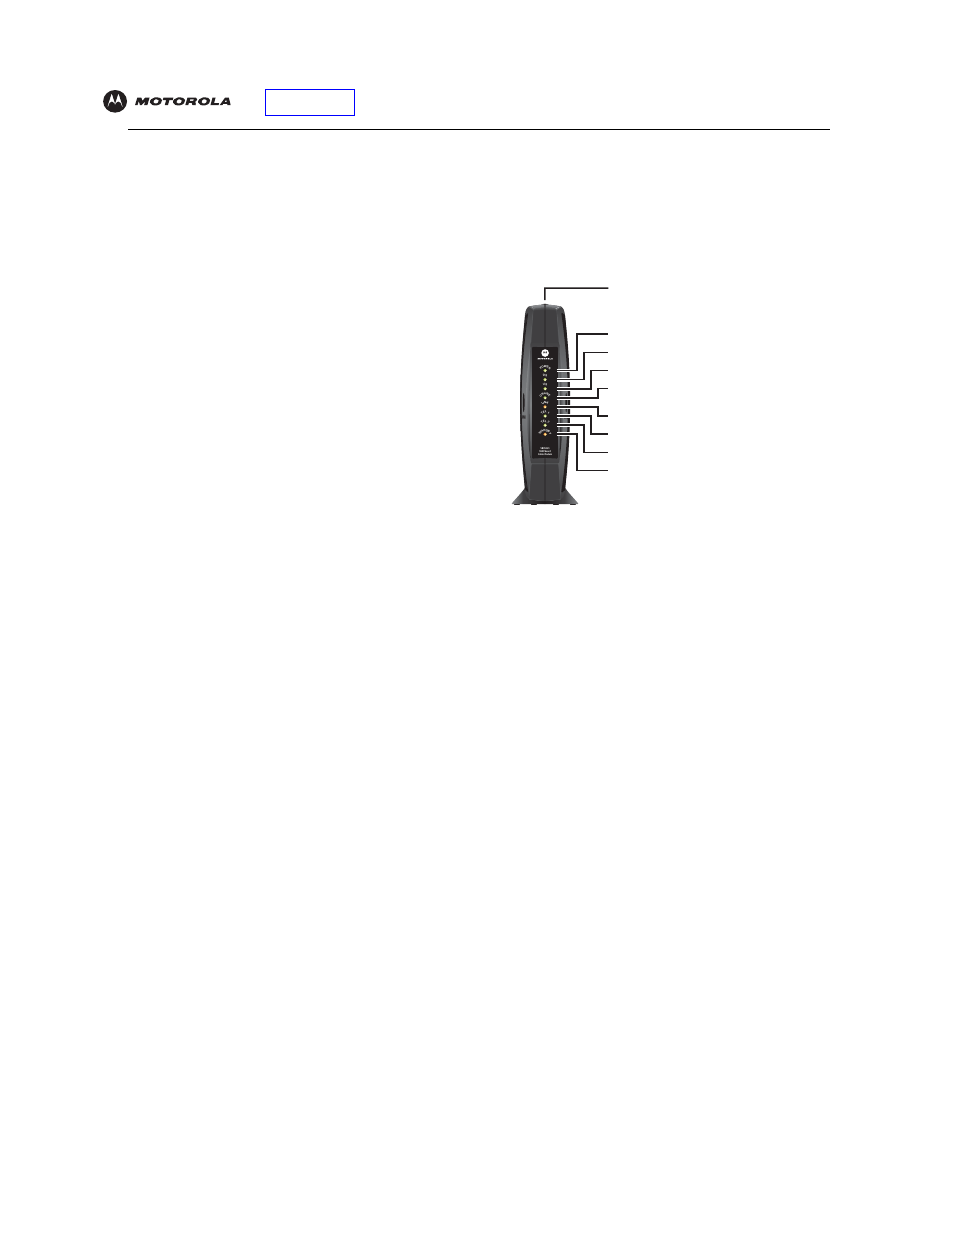 Cable modem motorola sbv5121 user guide   electrical connector.